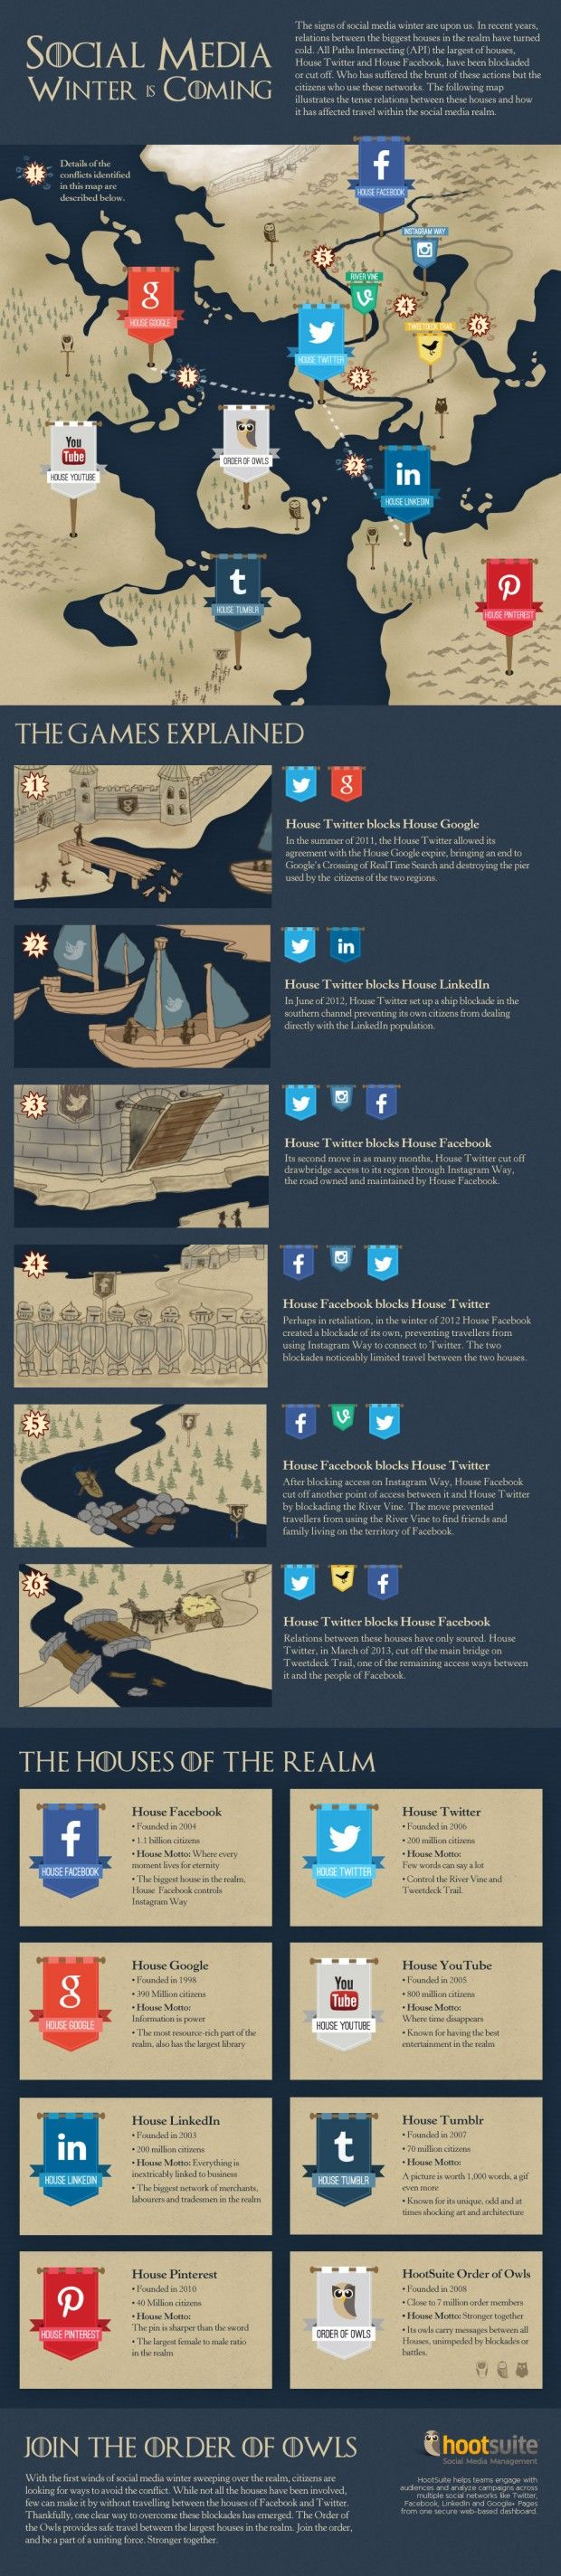 Social Media Winter is Coming Infographic - Click twice to enlarge